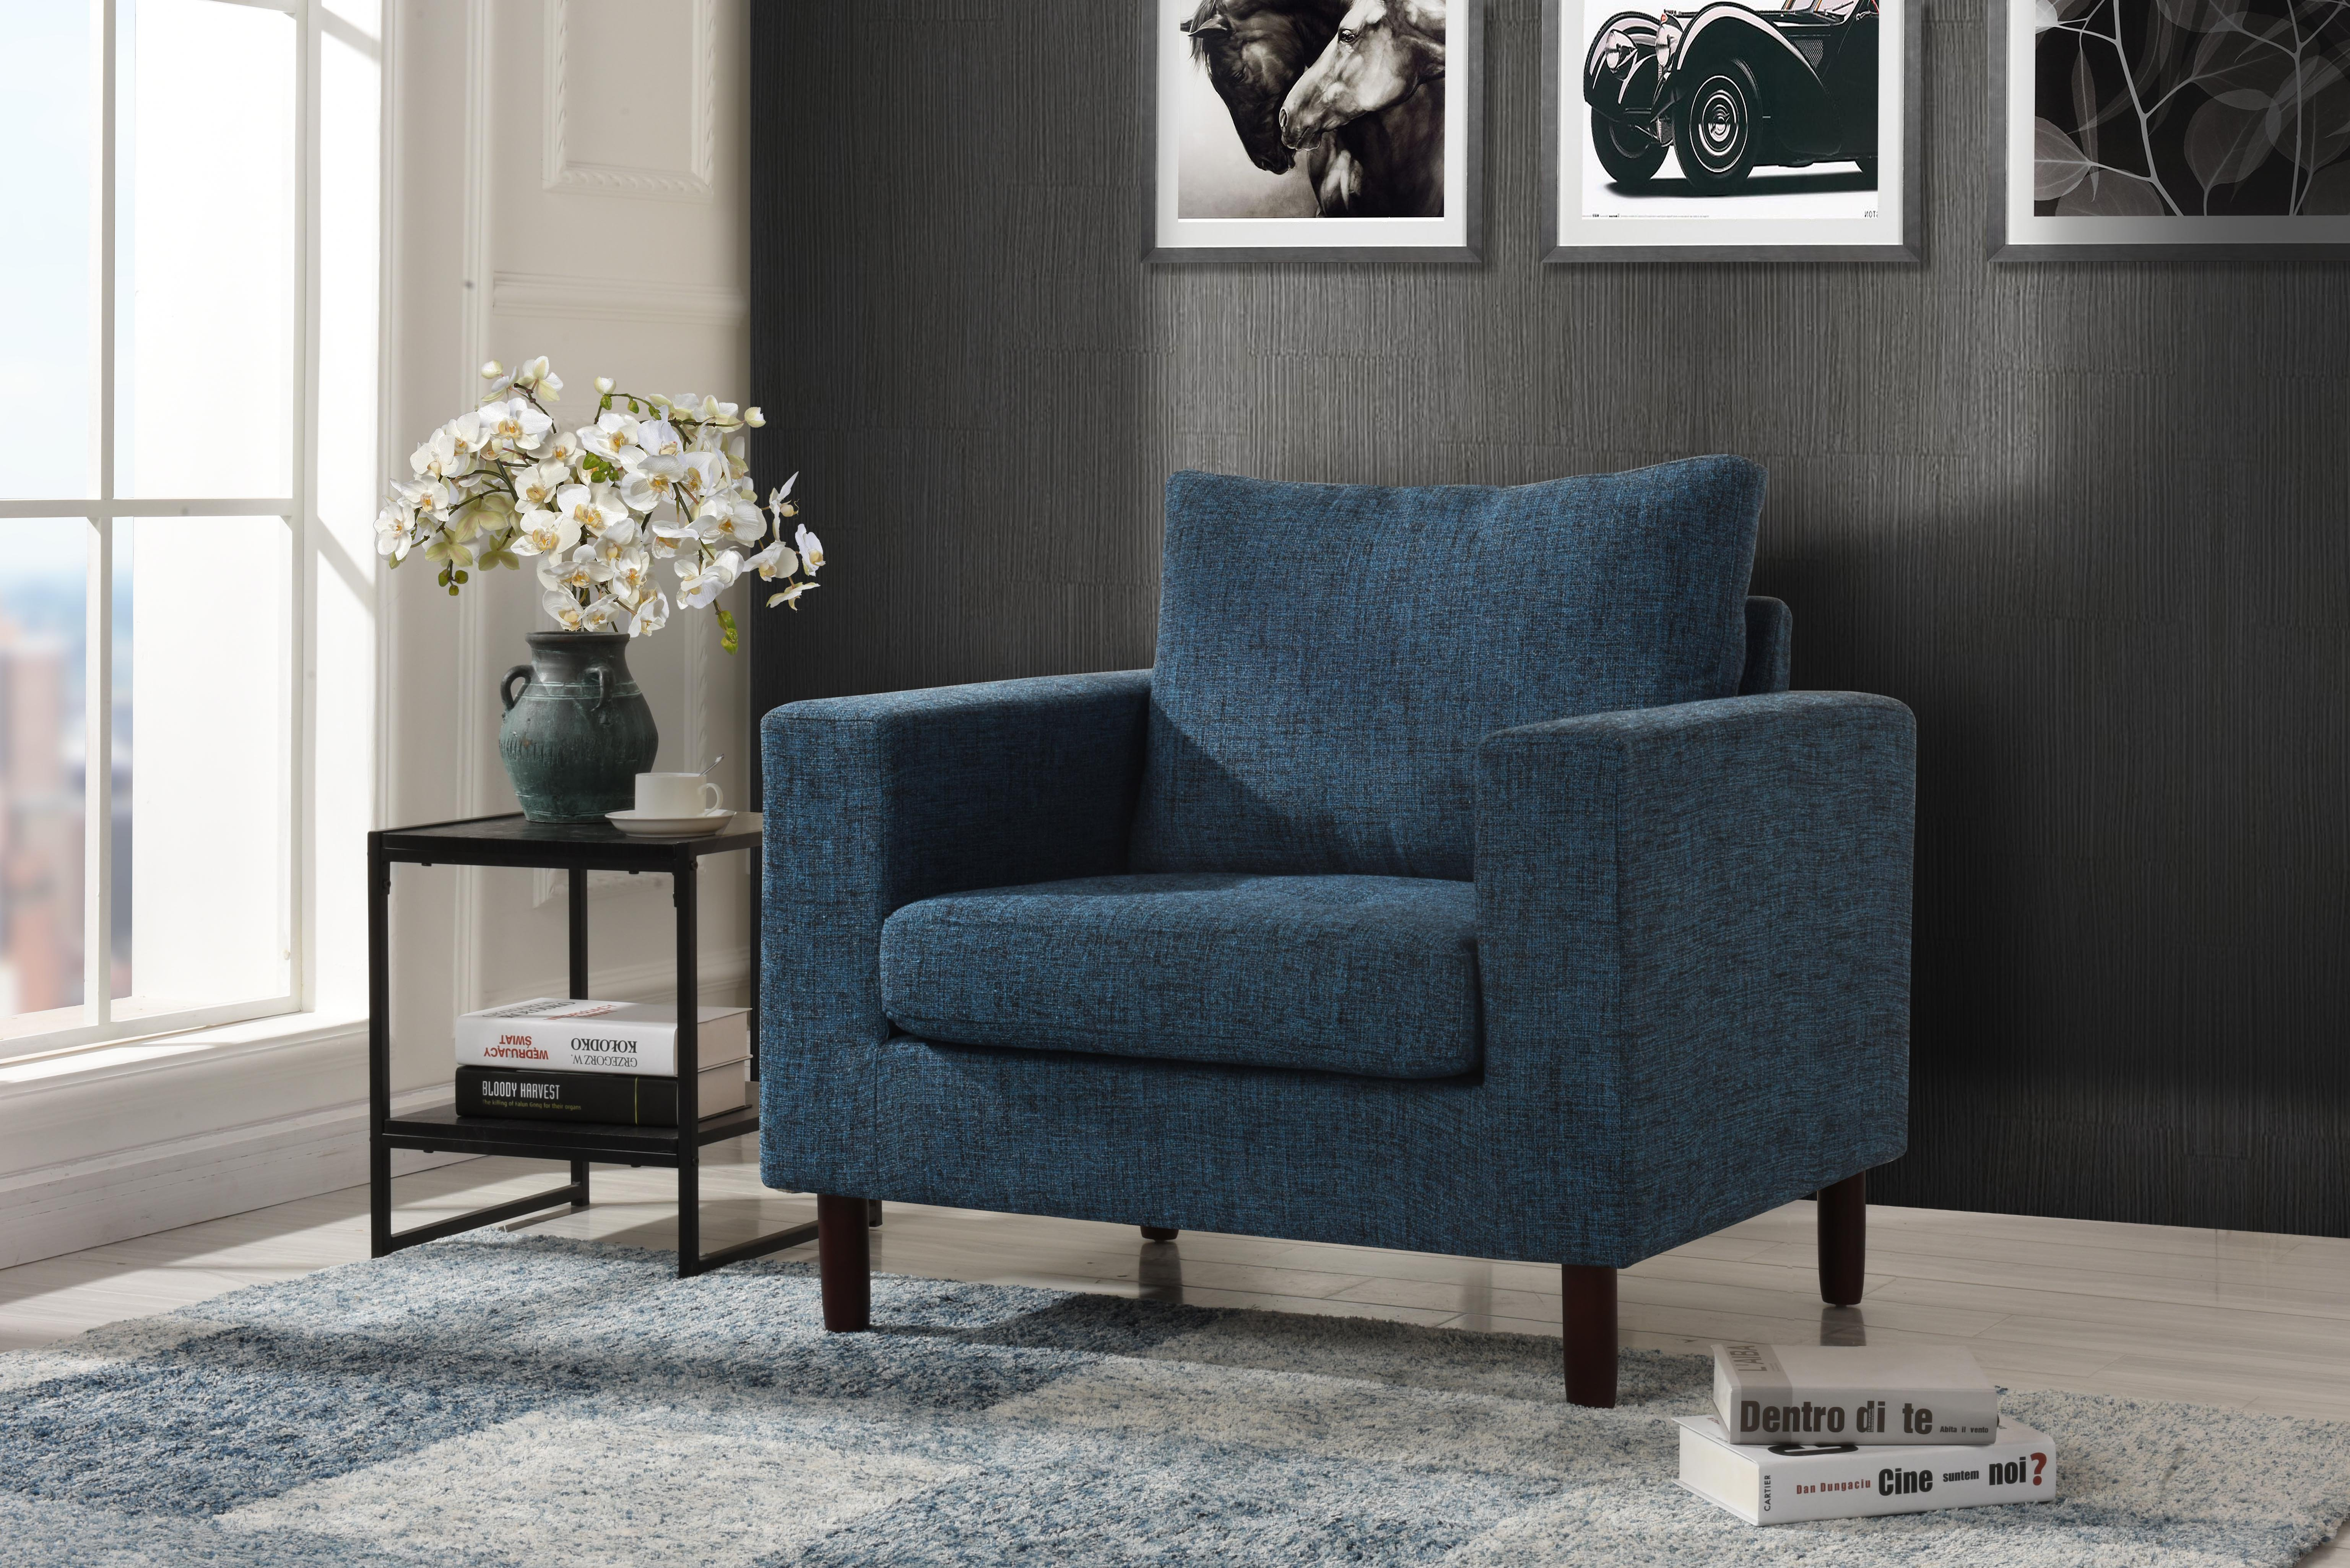 Ansprechend Tufted Living Room Chairs Accent Good Farmhouse in Leather Living Room Set Clearance